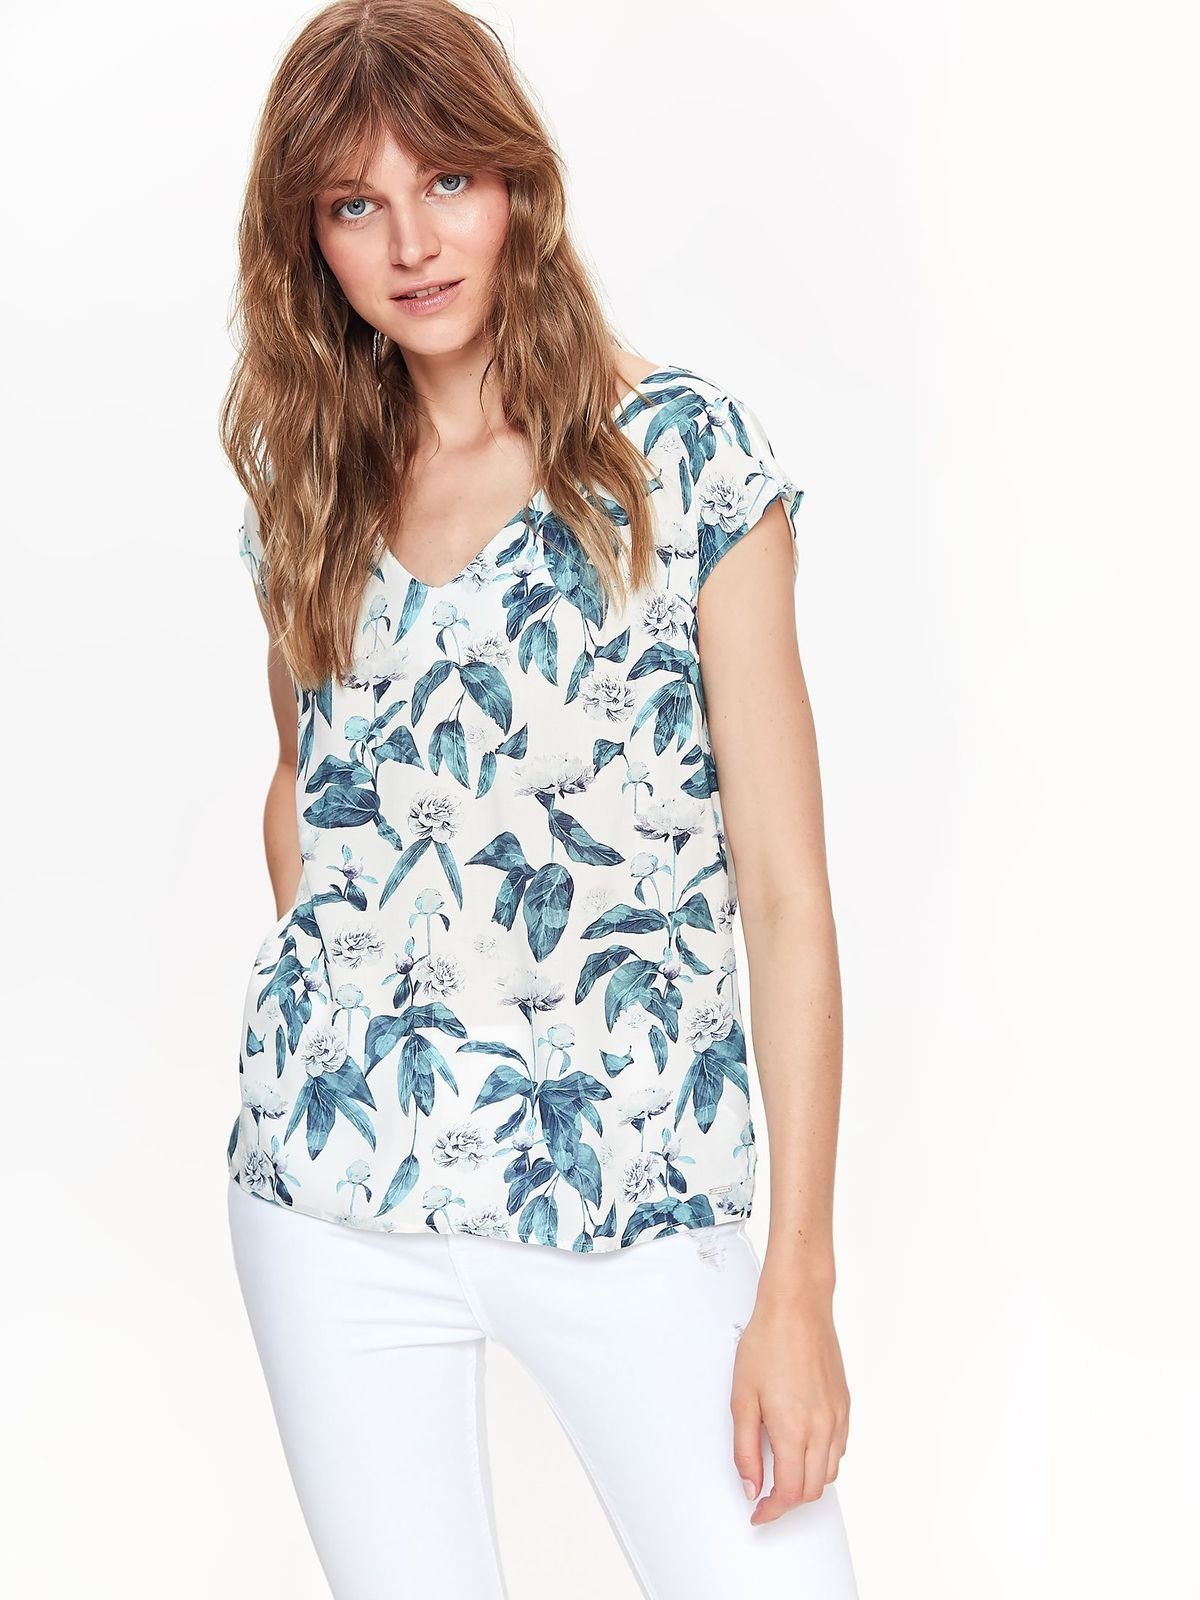 TOP SECRET Bluse mit floralem Muster